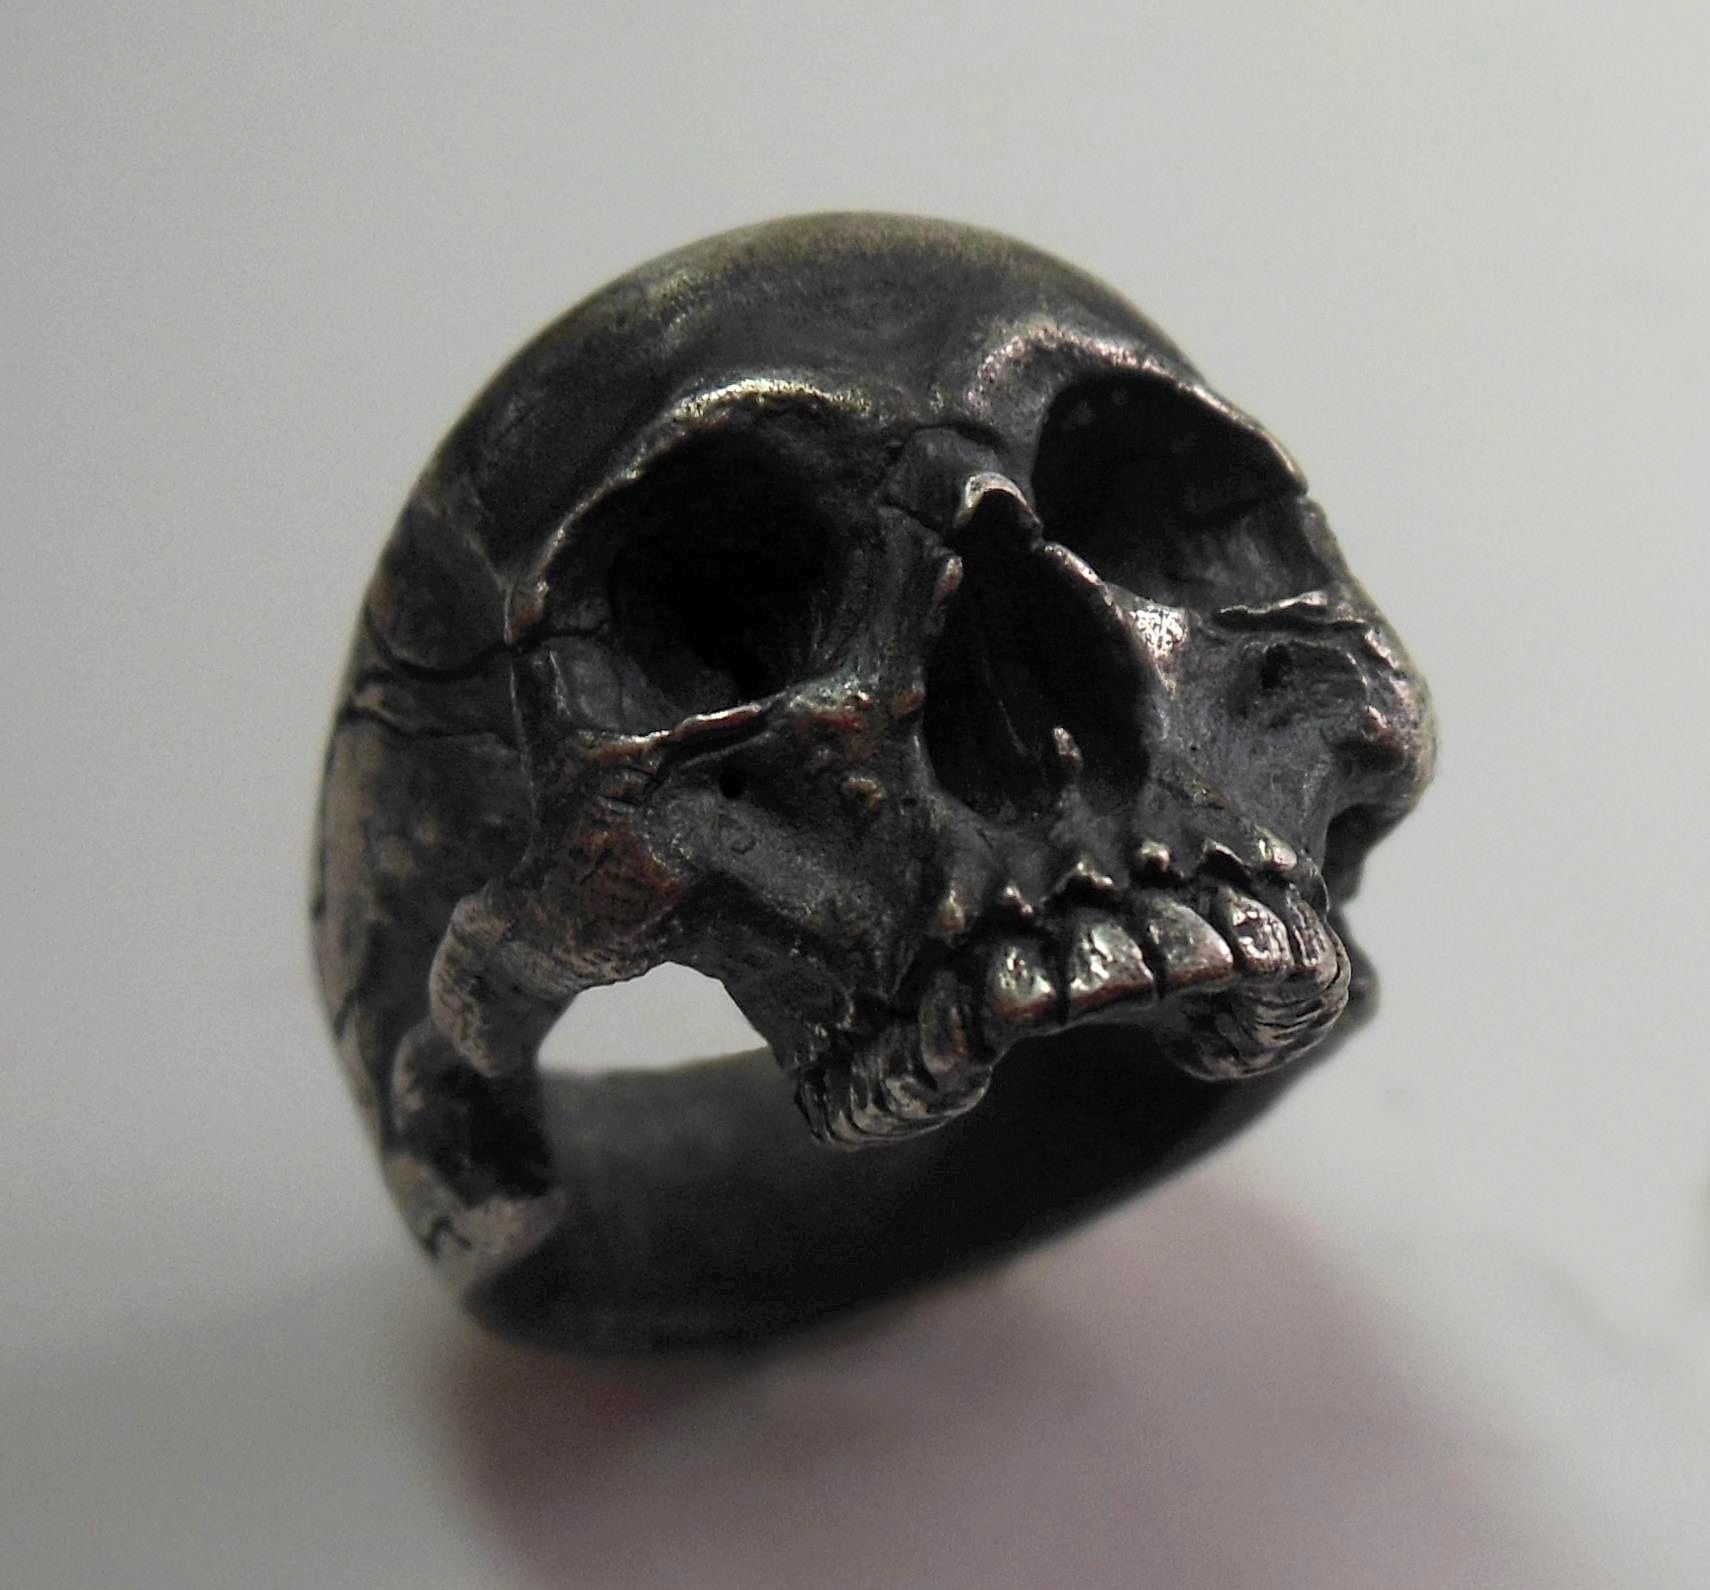 Find great deals on eBay for skull ring men. Shop with confidence.